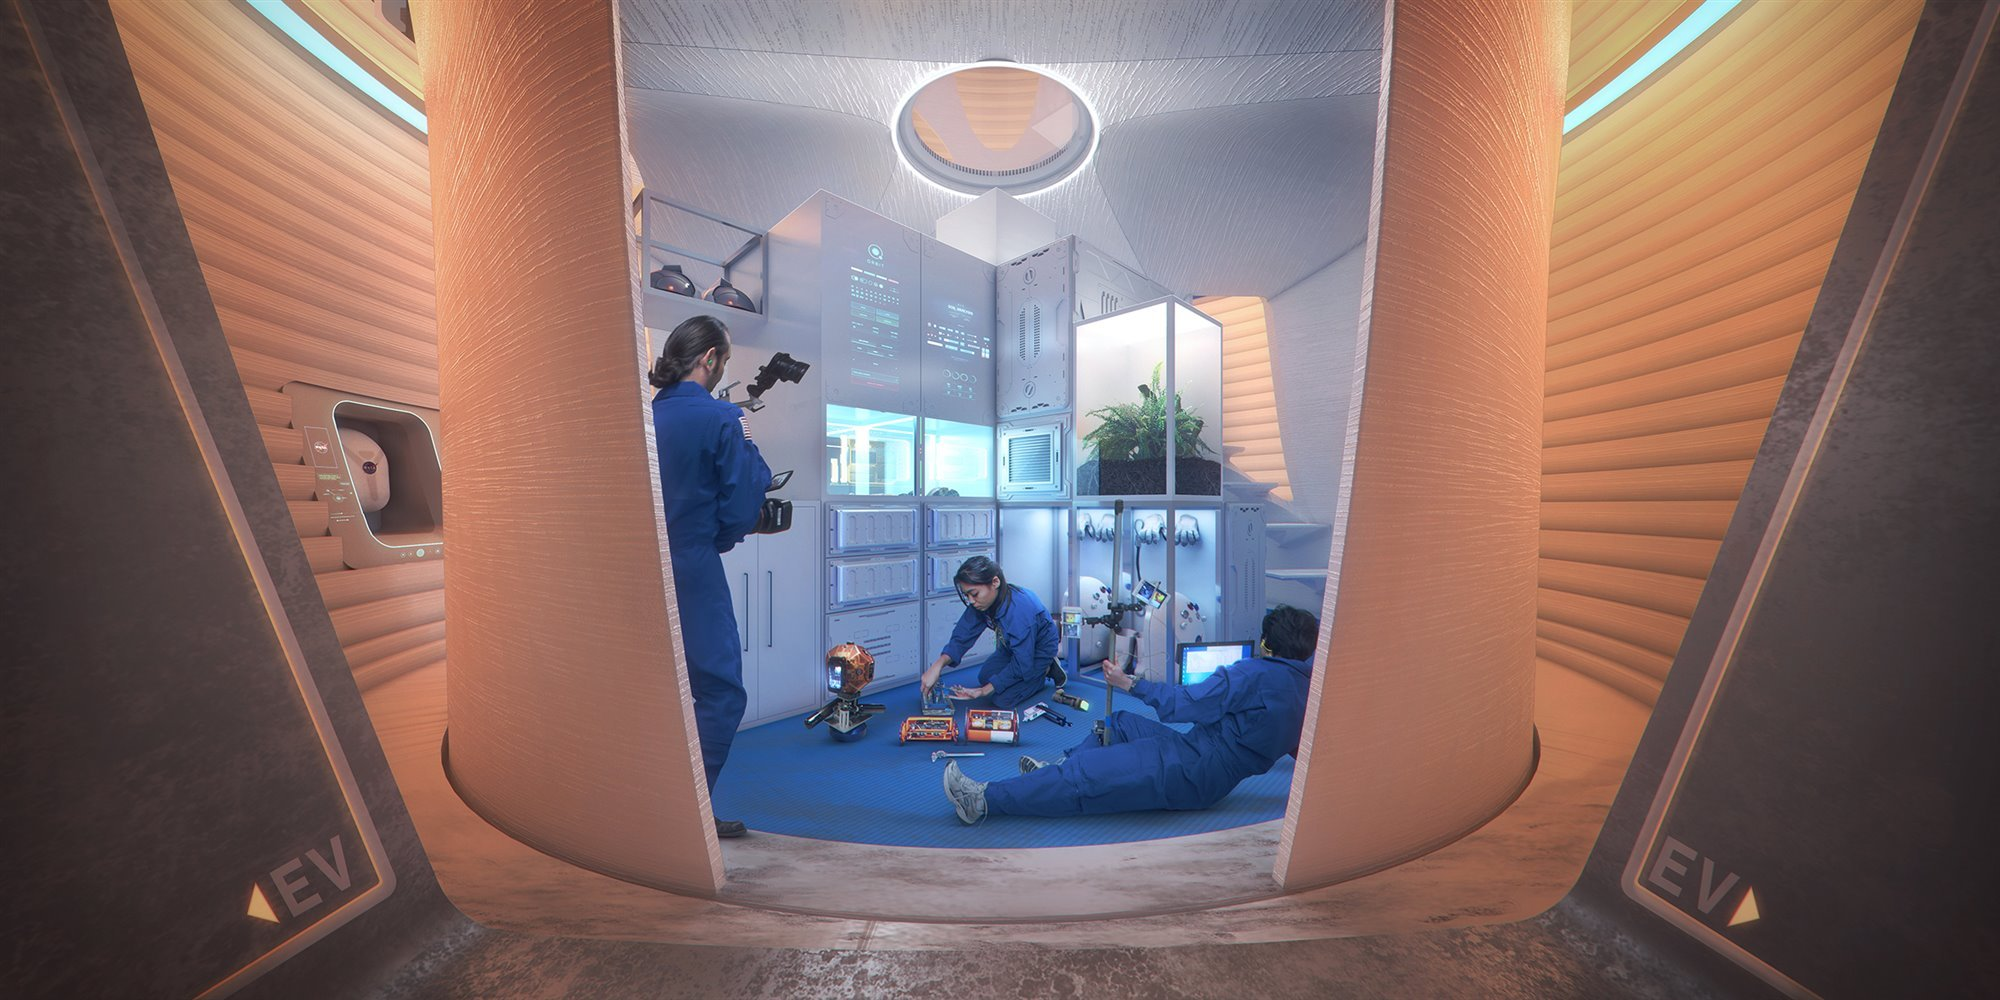 AI-SpaceFactory-Mars-Habitat-Interior-Ambulatory-2400p. Estructura de doble capa